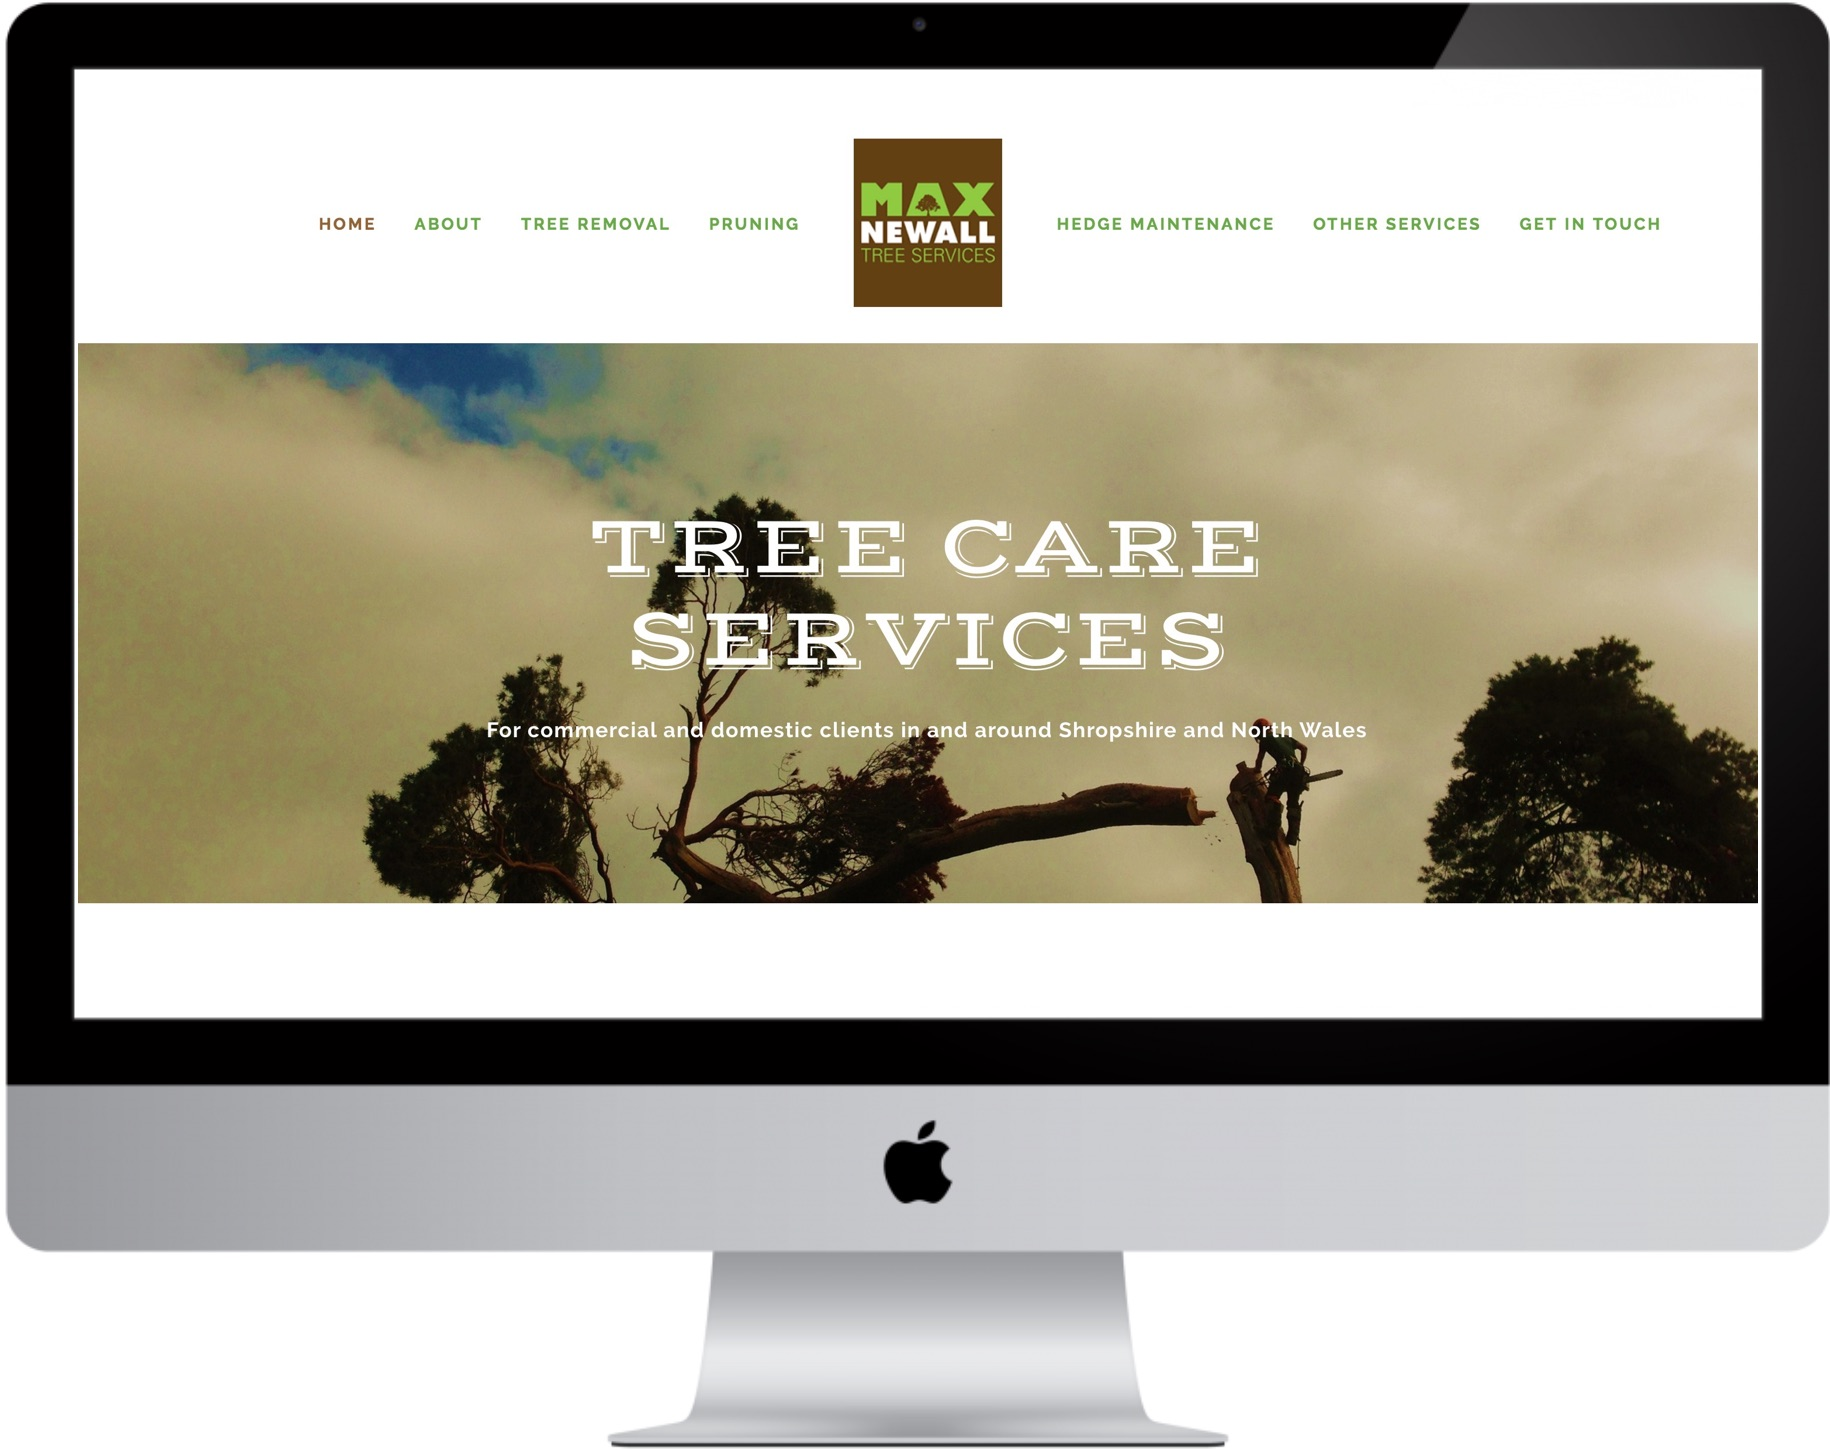 Max Newall Tree Services